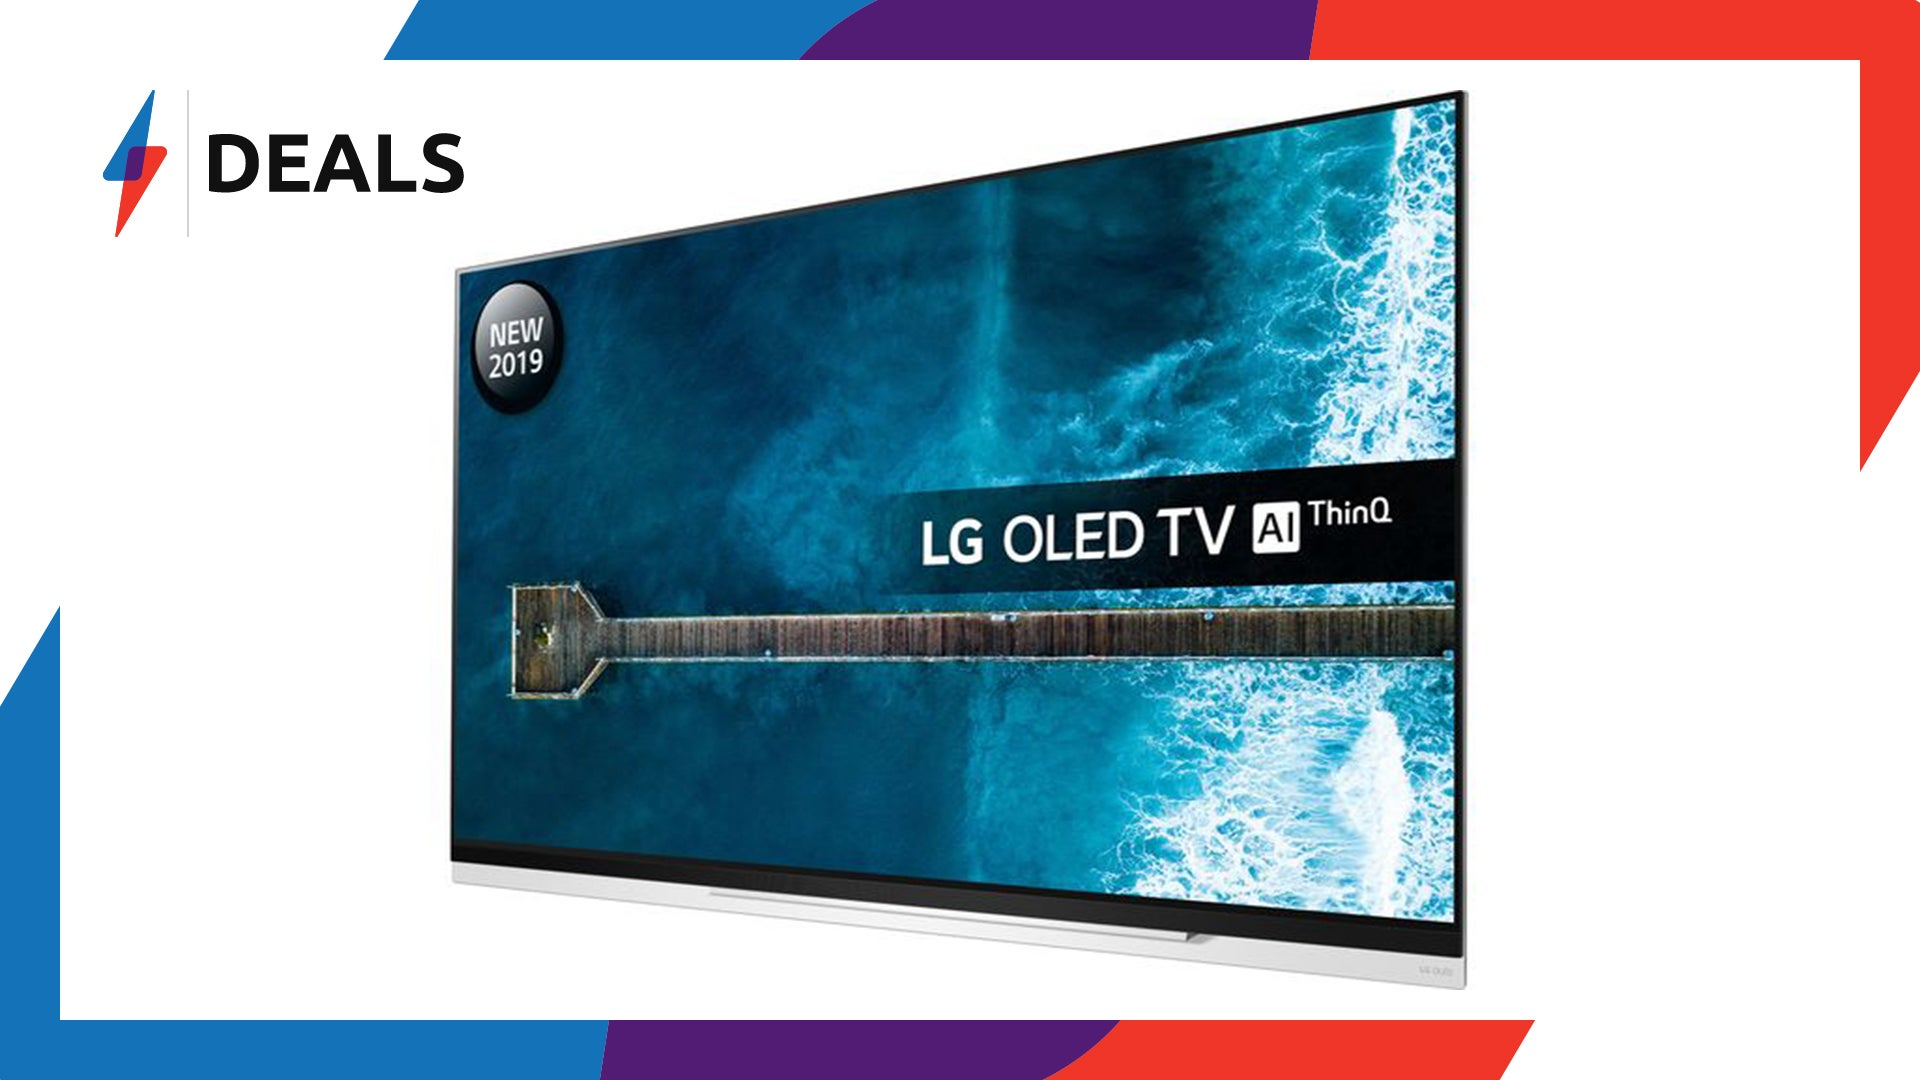 Currys has docked a whopping £1000 of this gorgeous LG E9 OLED TV